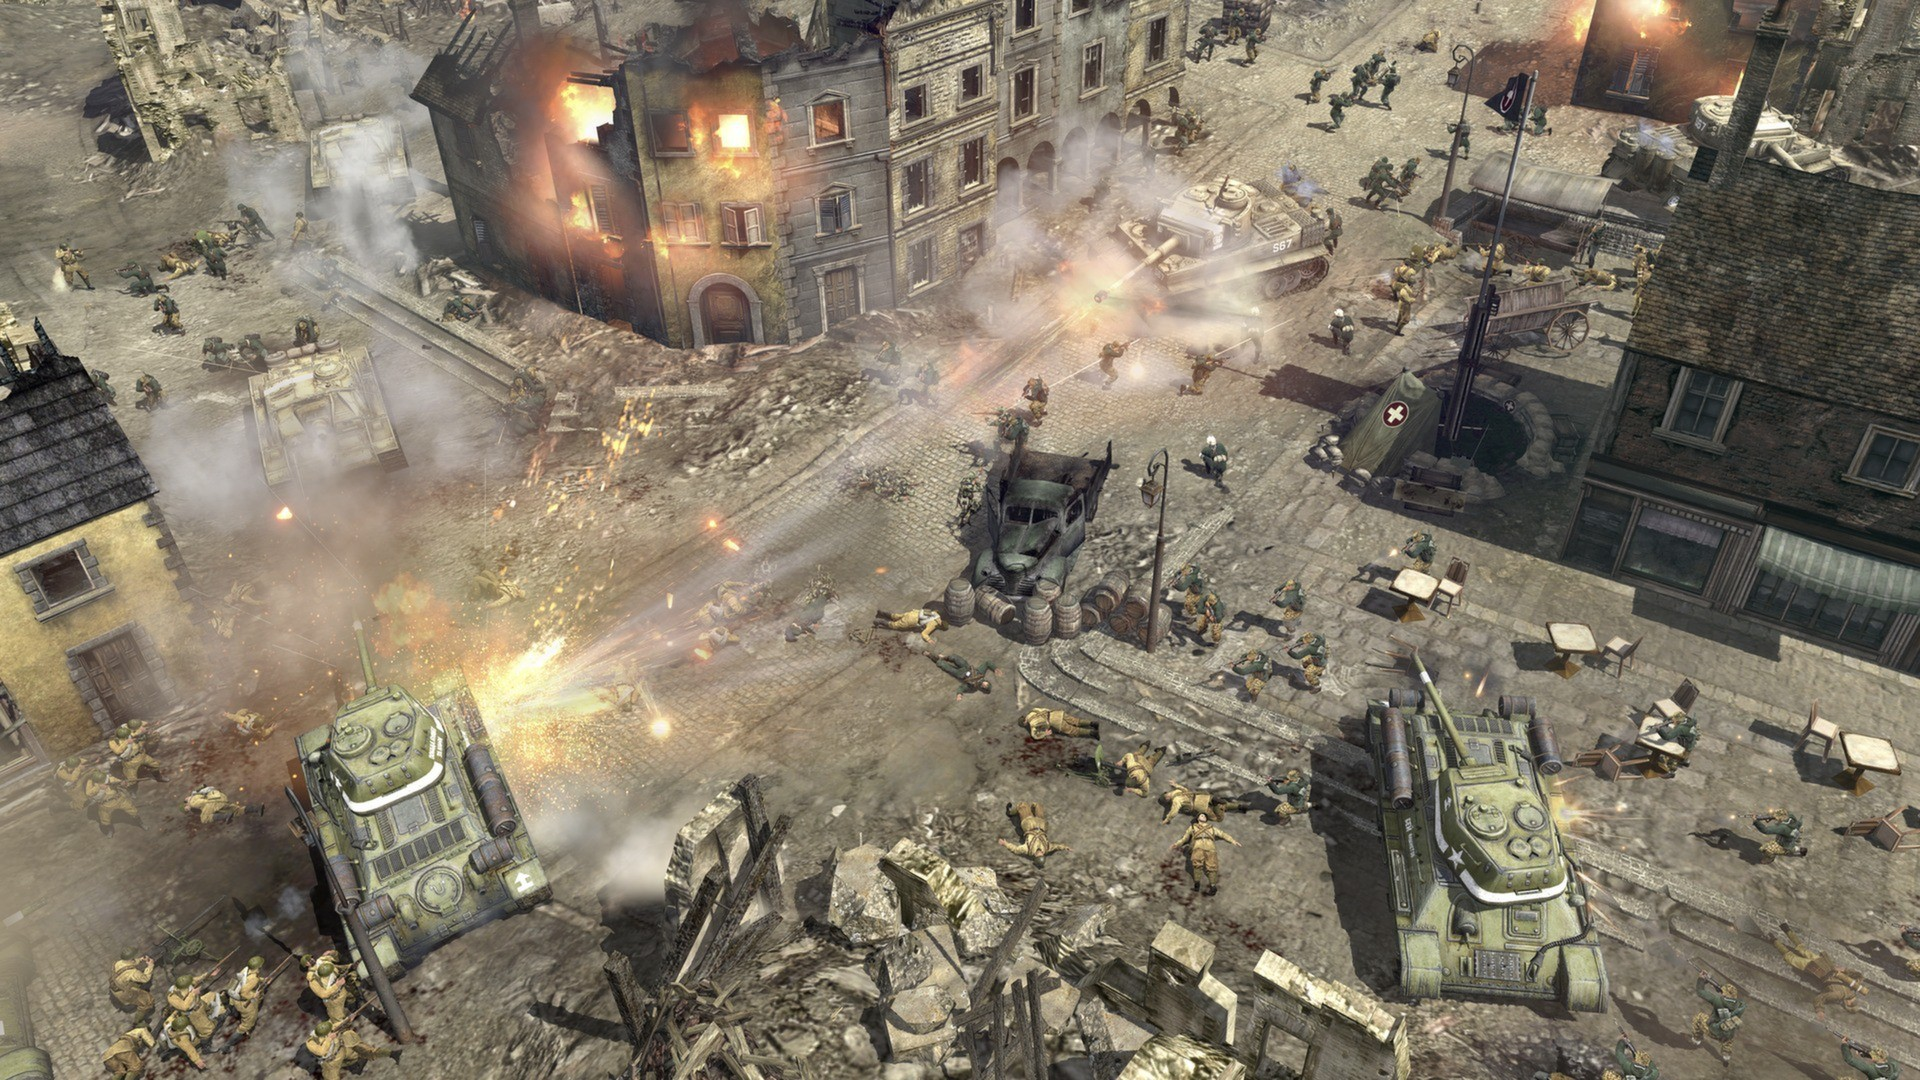 Coh 2 Case Blue : Company of heroes theatre of war case blue dlc steam cd key